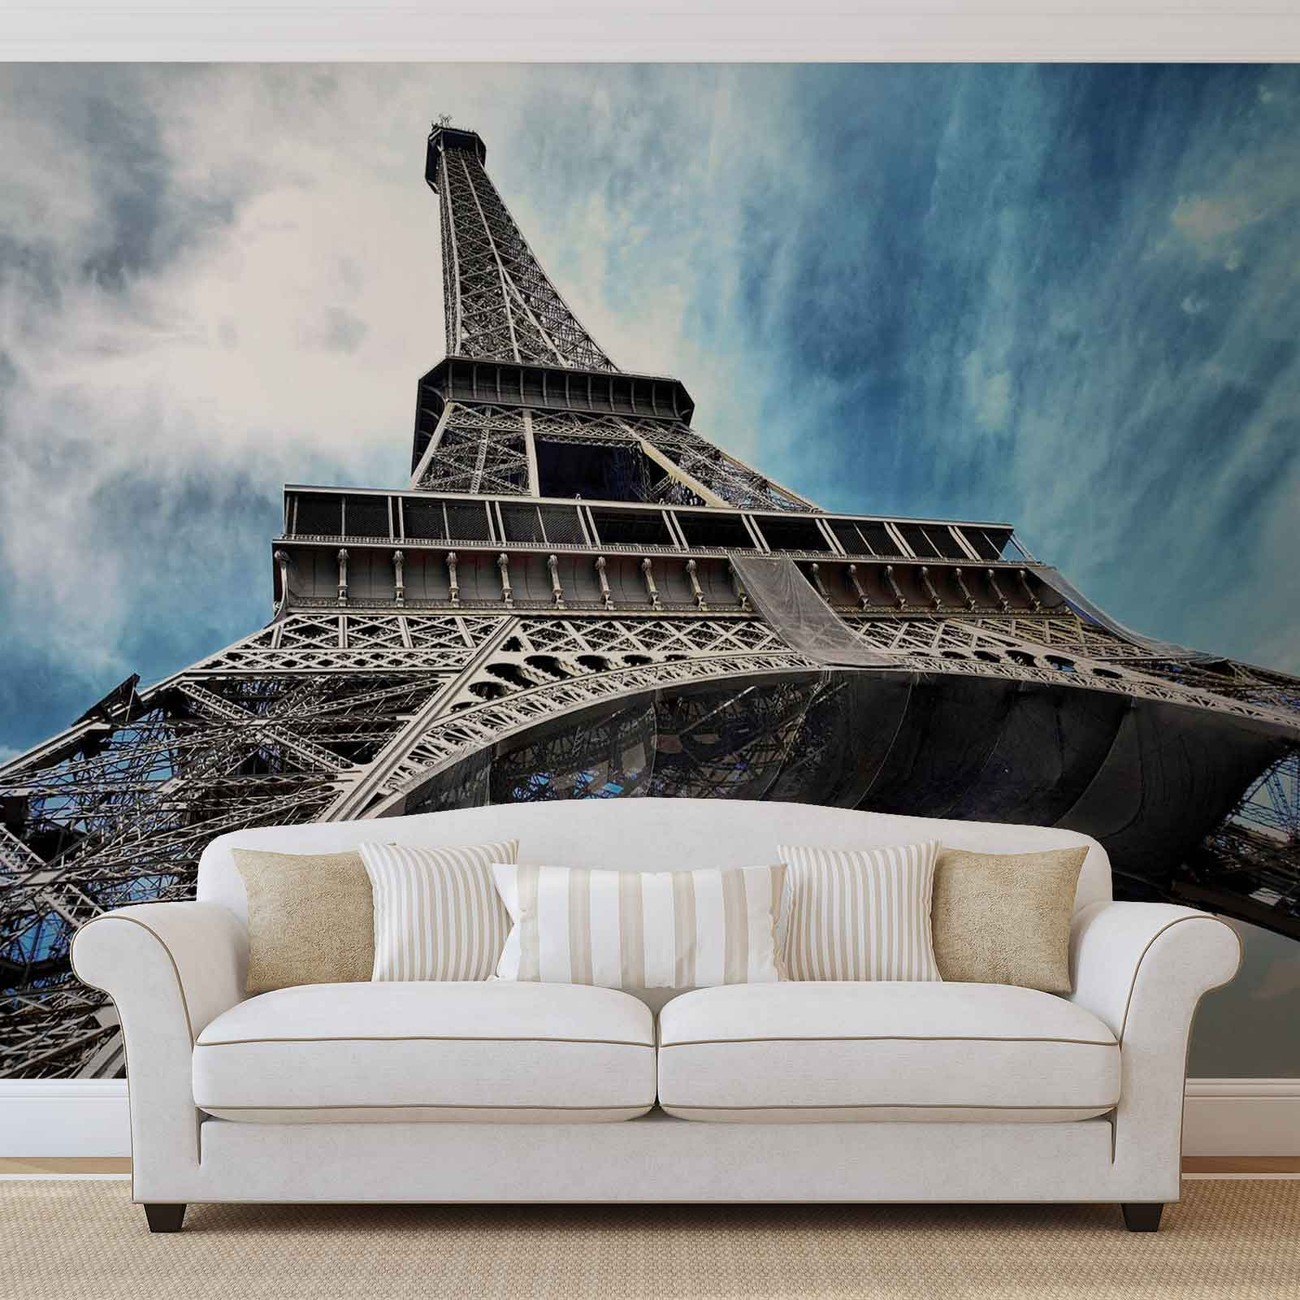 Eiffel tower paris wall paper mural buy at for Eiffel tower mural